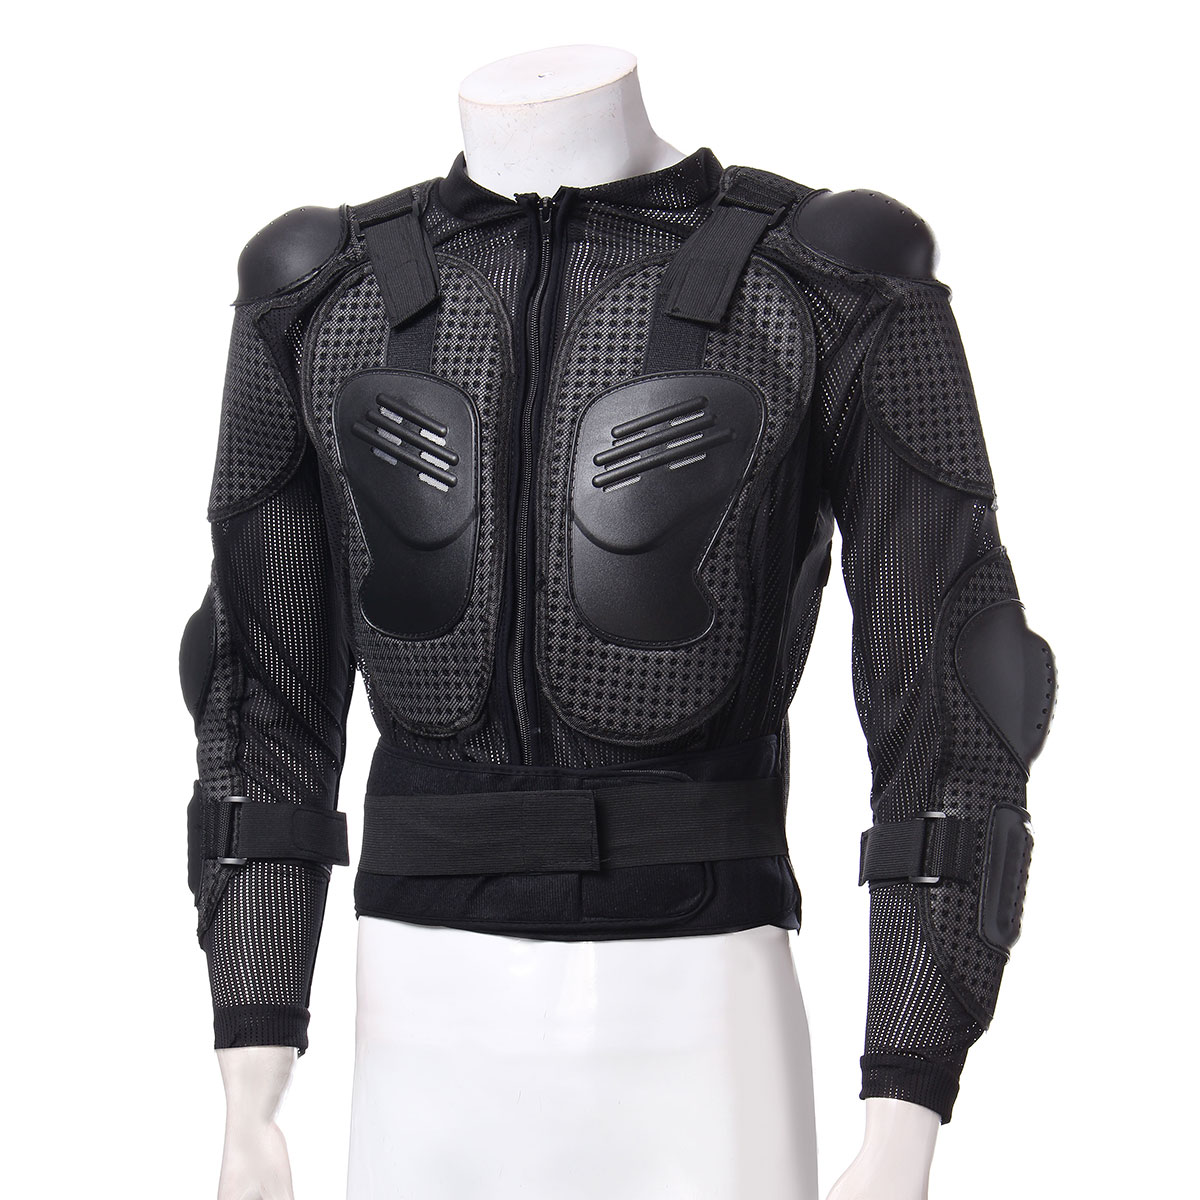 Armor US Motorcycle Gear Jacket Protection Spine Riding Body Shoulder Full Chest Sexy Design And Adjustable Belt(China)